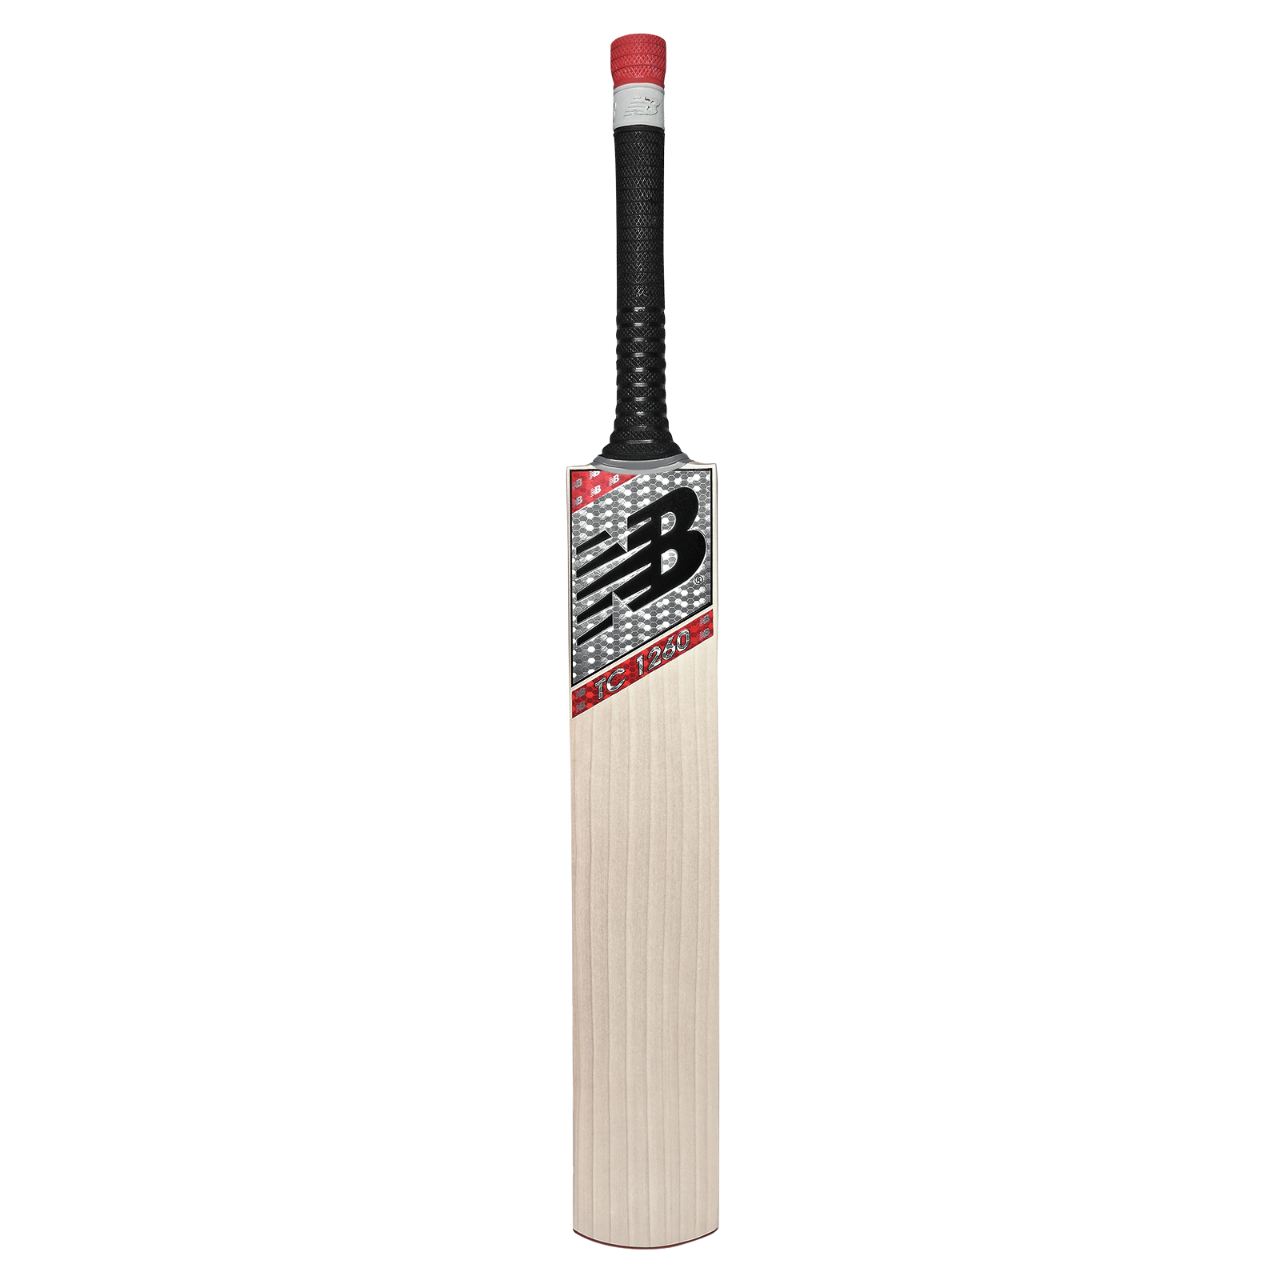 2021 New Balance TC 1260 Cricket Bat